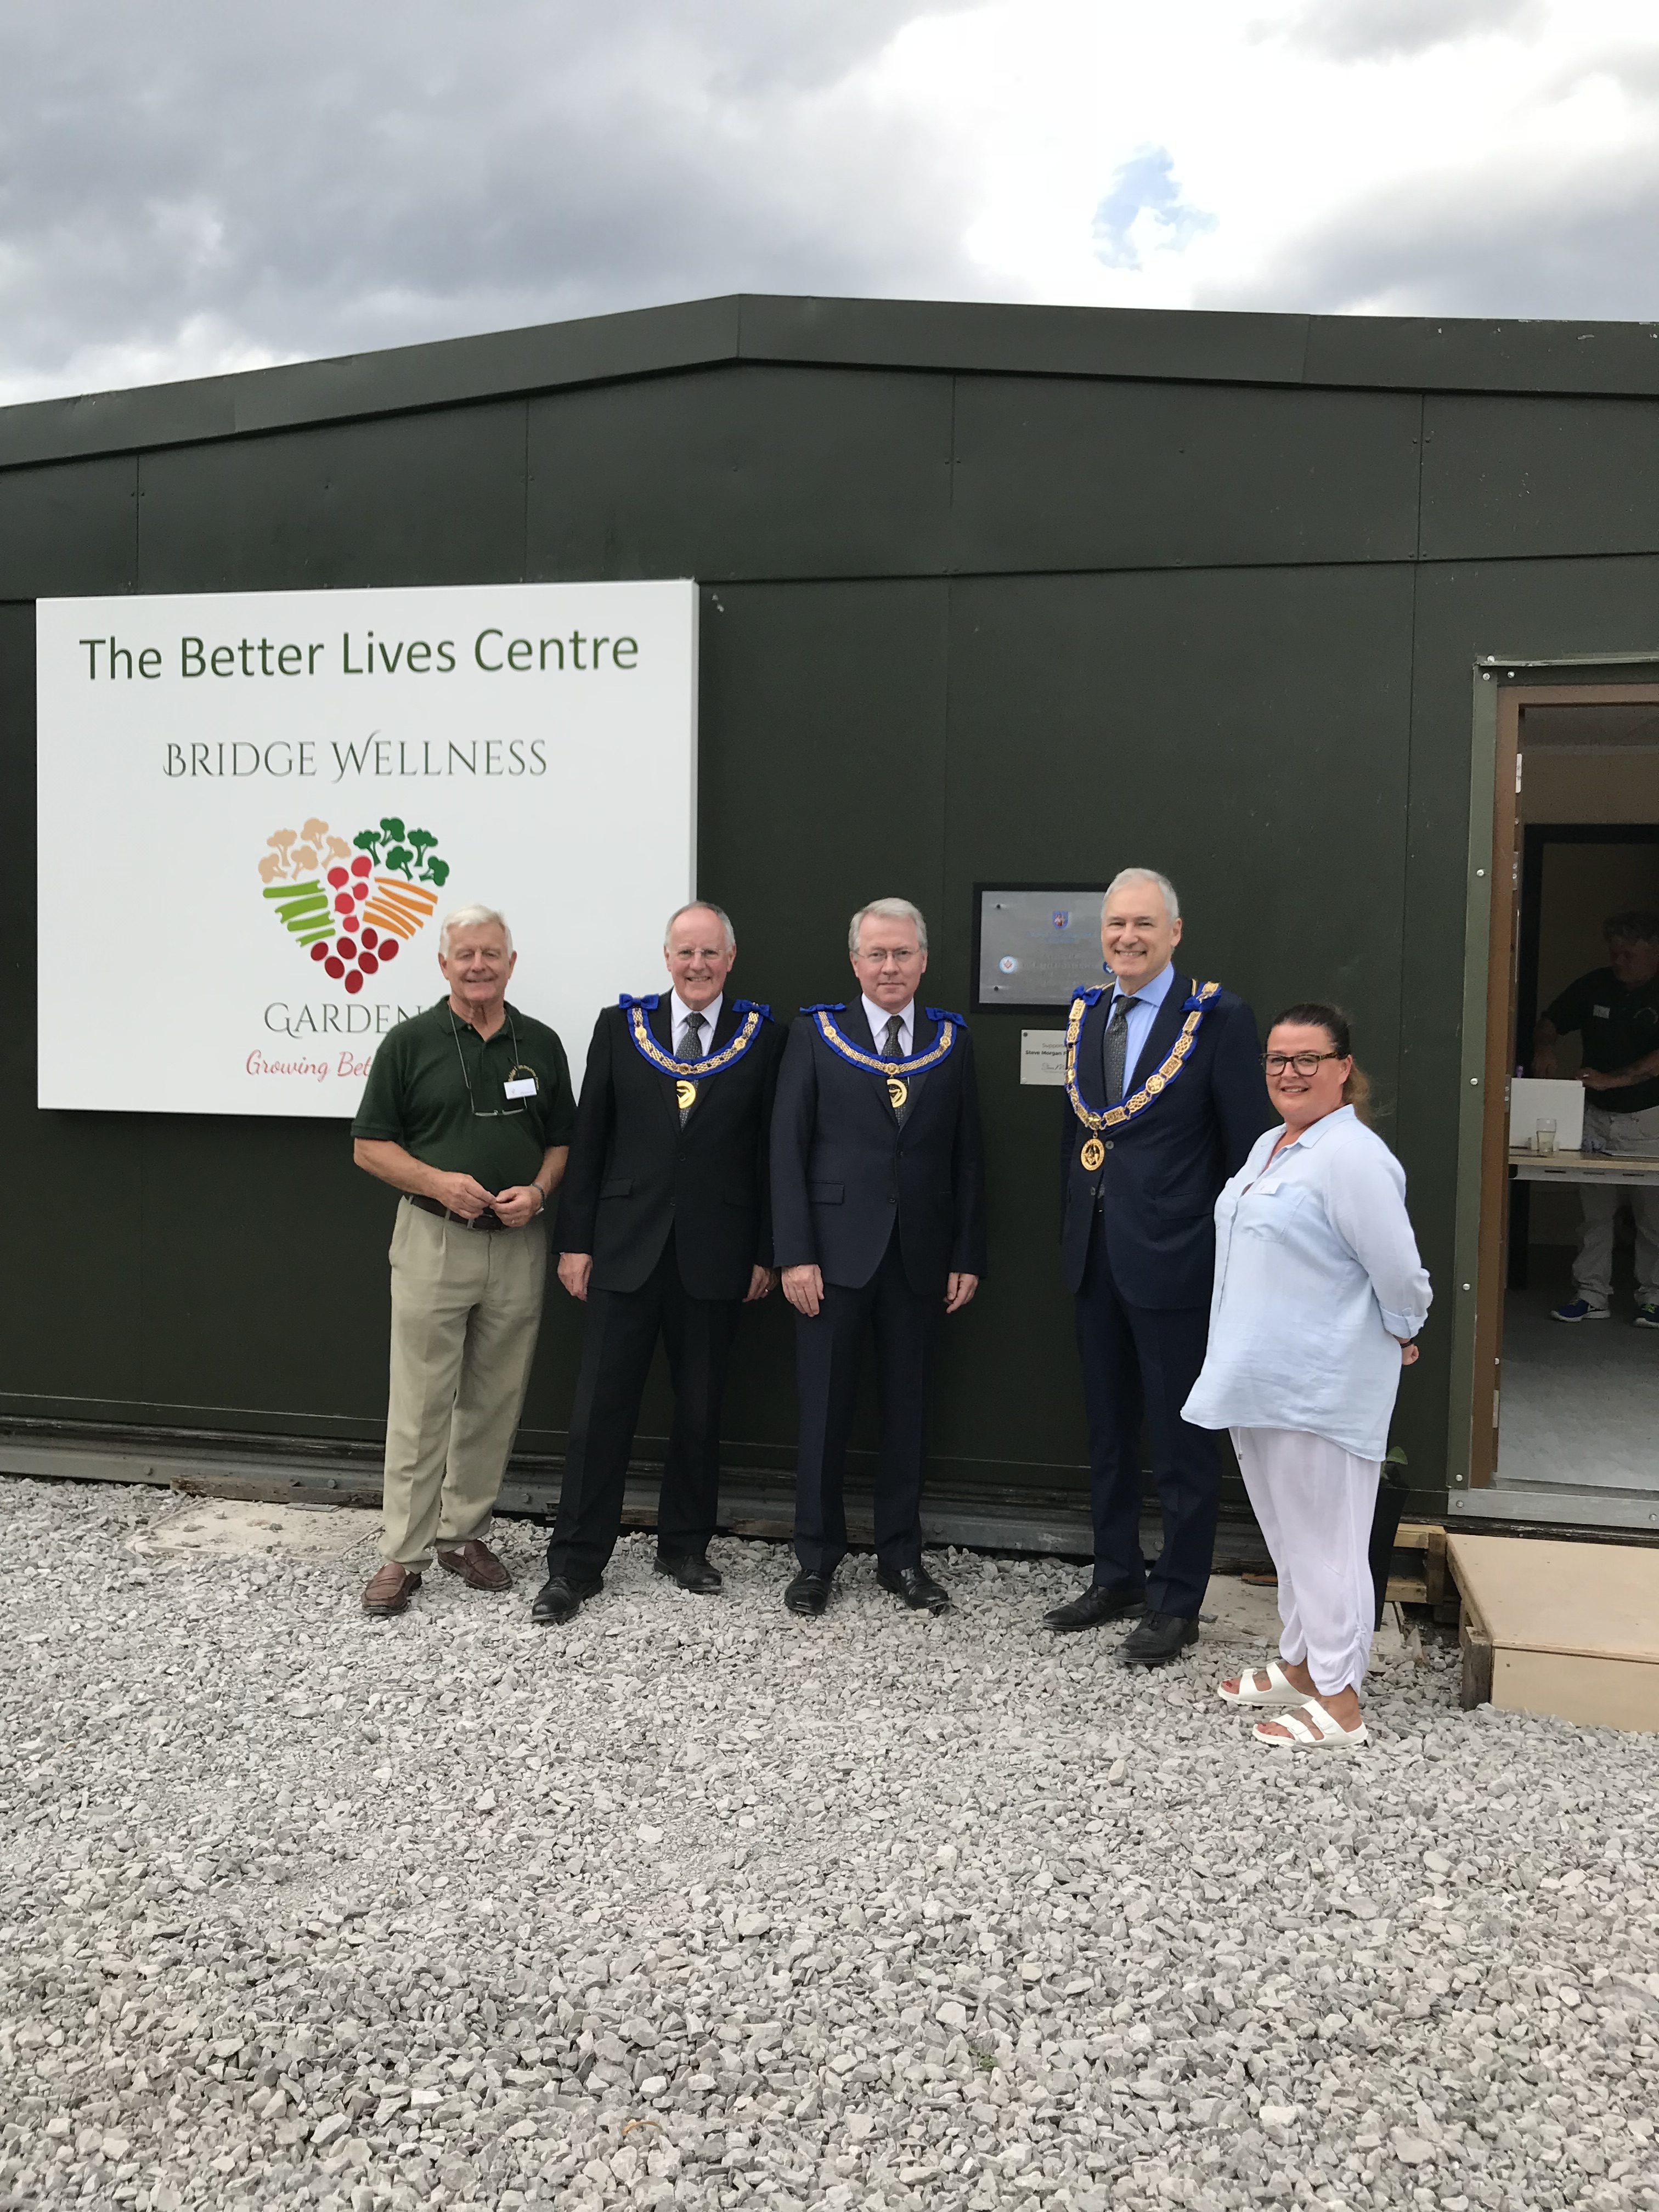 It's officially open! L – R Francis Ball, Chairman of Bridge Community Wellness Garden and Farm; Assistant Provincial Grand Master, Simon Palfreyman; Assistant Provincial Grand Master, Paul Massie; Provincial Grand Master, Stephen Blank; Claire Johnson, Manager, Bridge Community Wellness Garden and Farm.